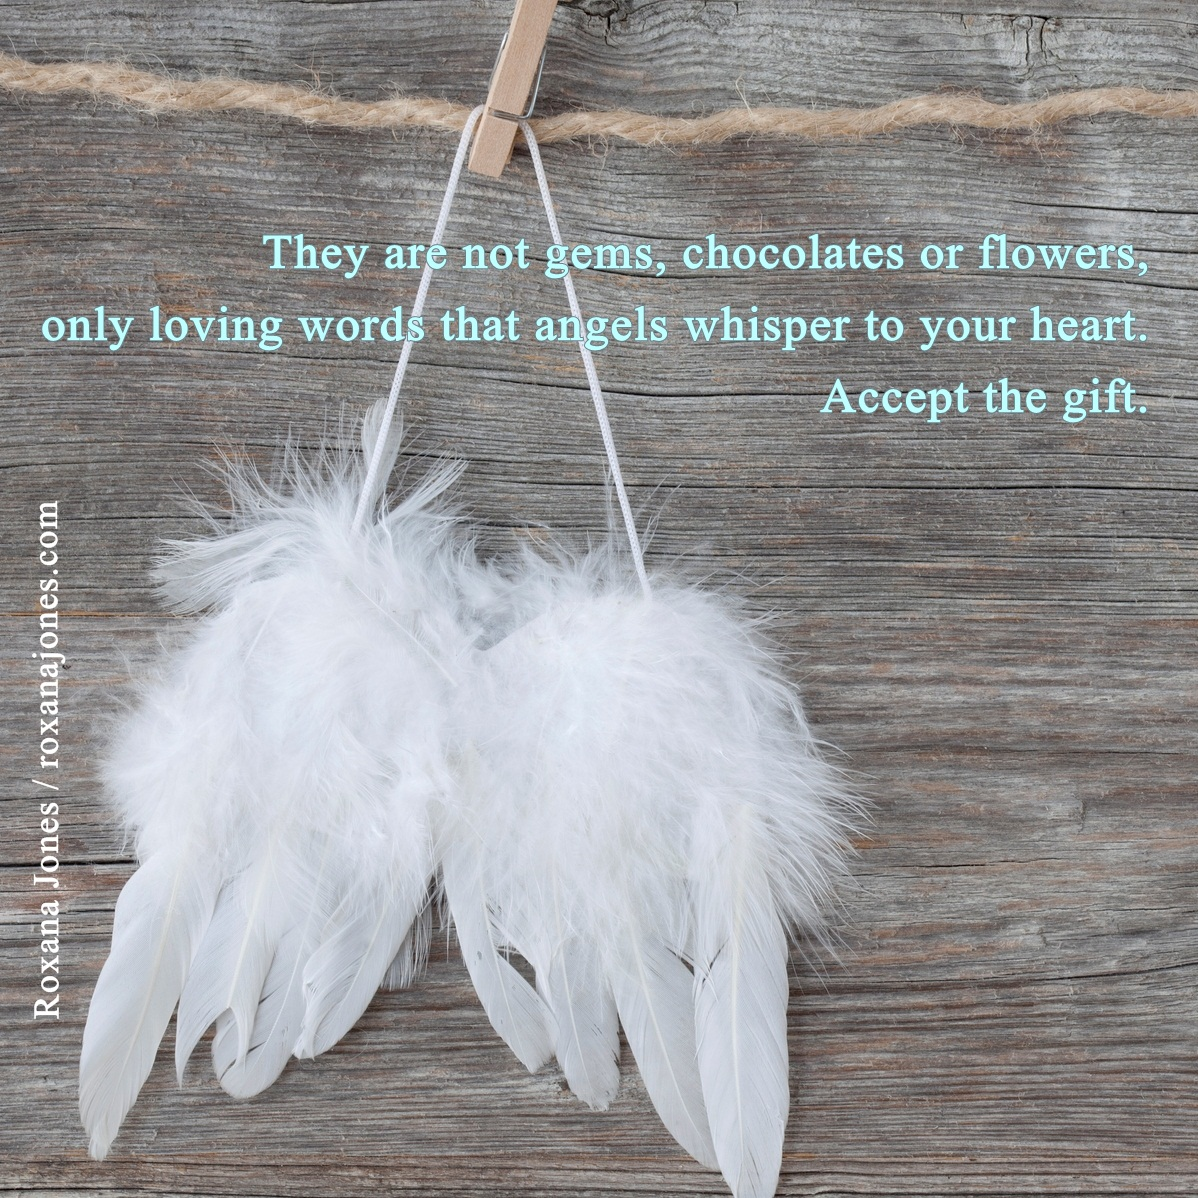 Quotes About Love: Angel Inspirational Quotes. QuotesGram